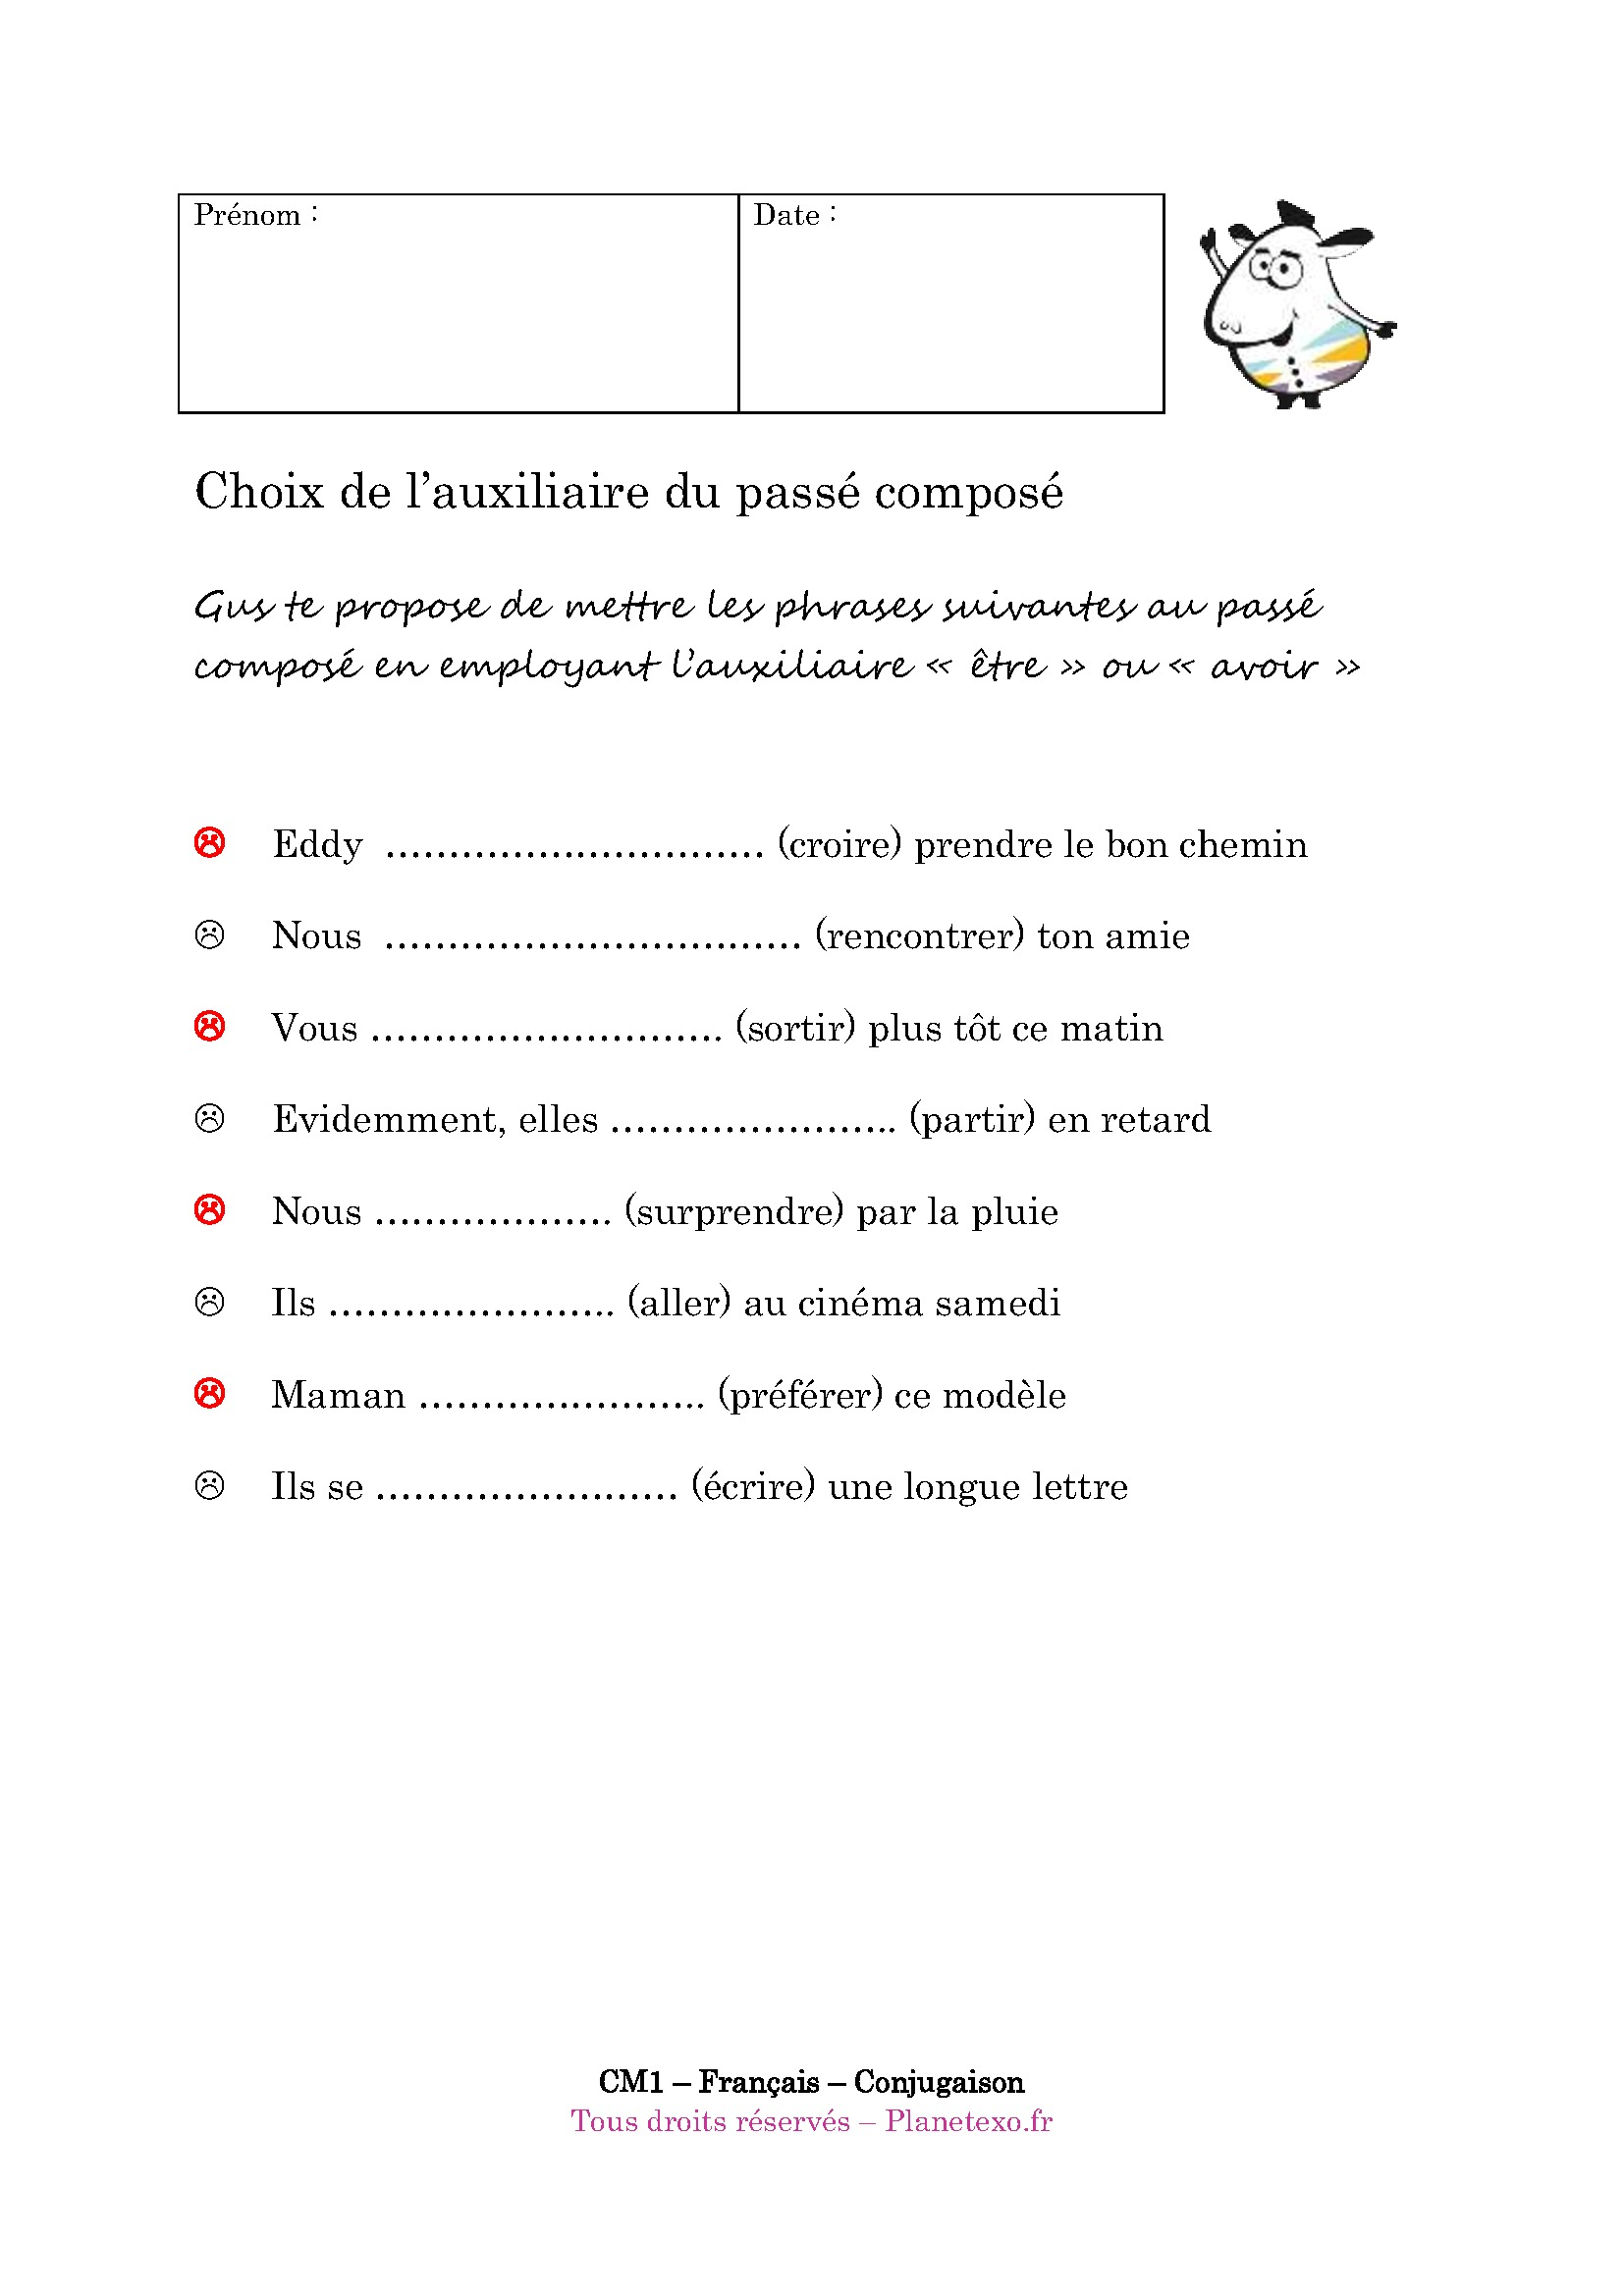 Agreeing past participle with subject's gender and number with (+ être) verbs in Le Passé Composé